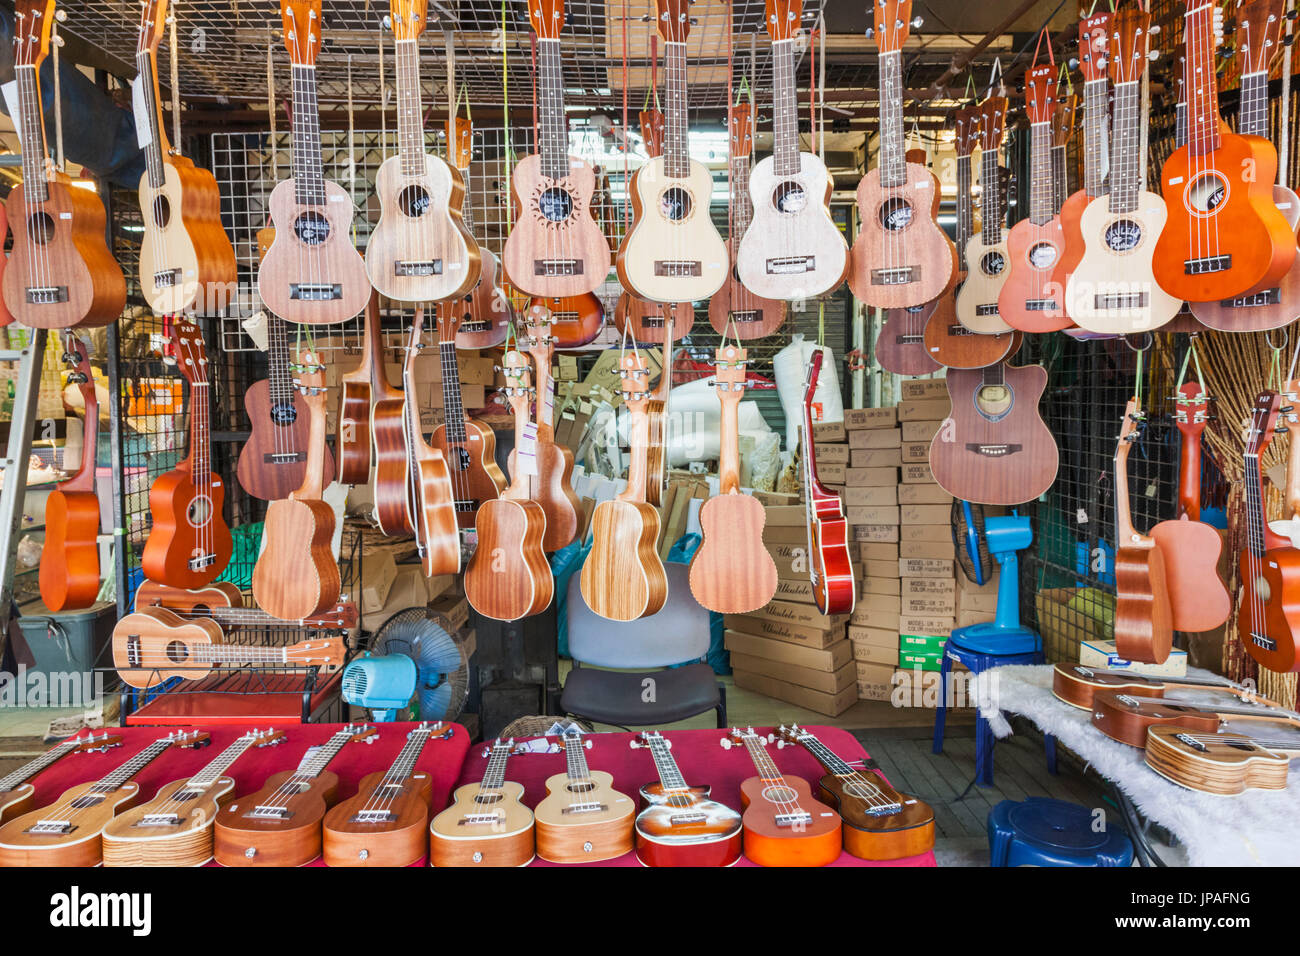 Thailand, Bangkok, Chatuchak Market, Shop Display of Ukuleles - Stock Image